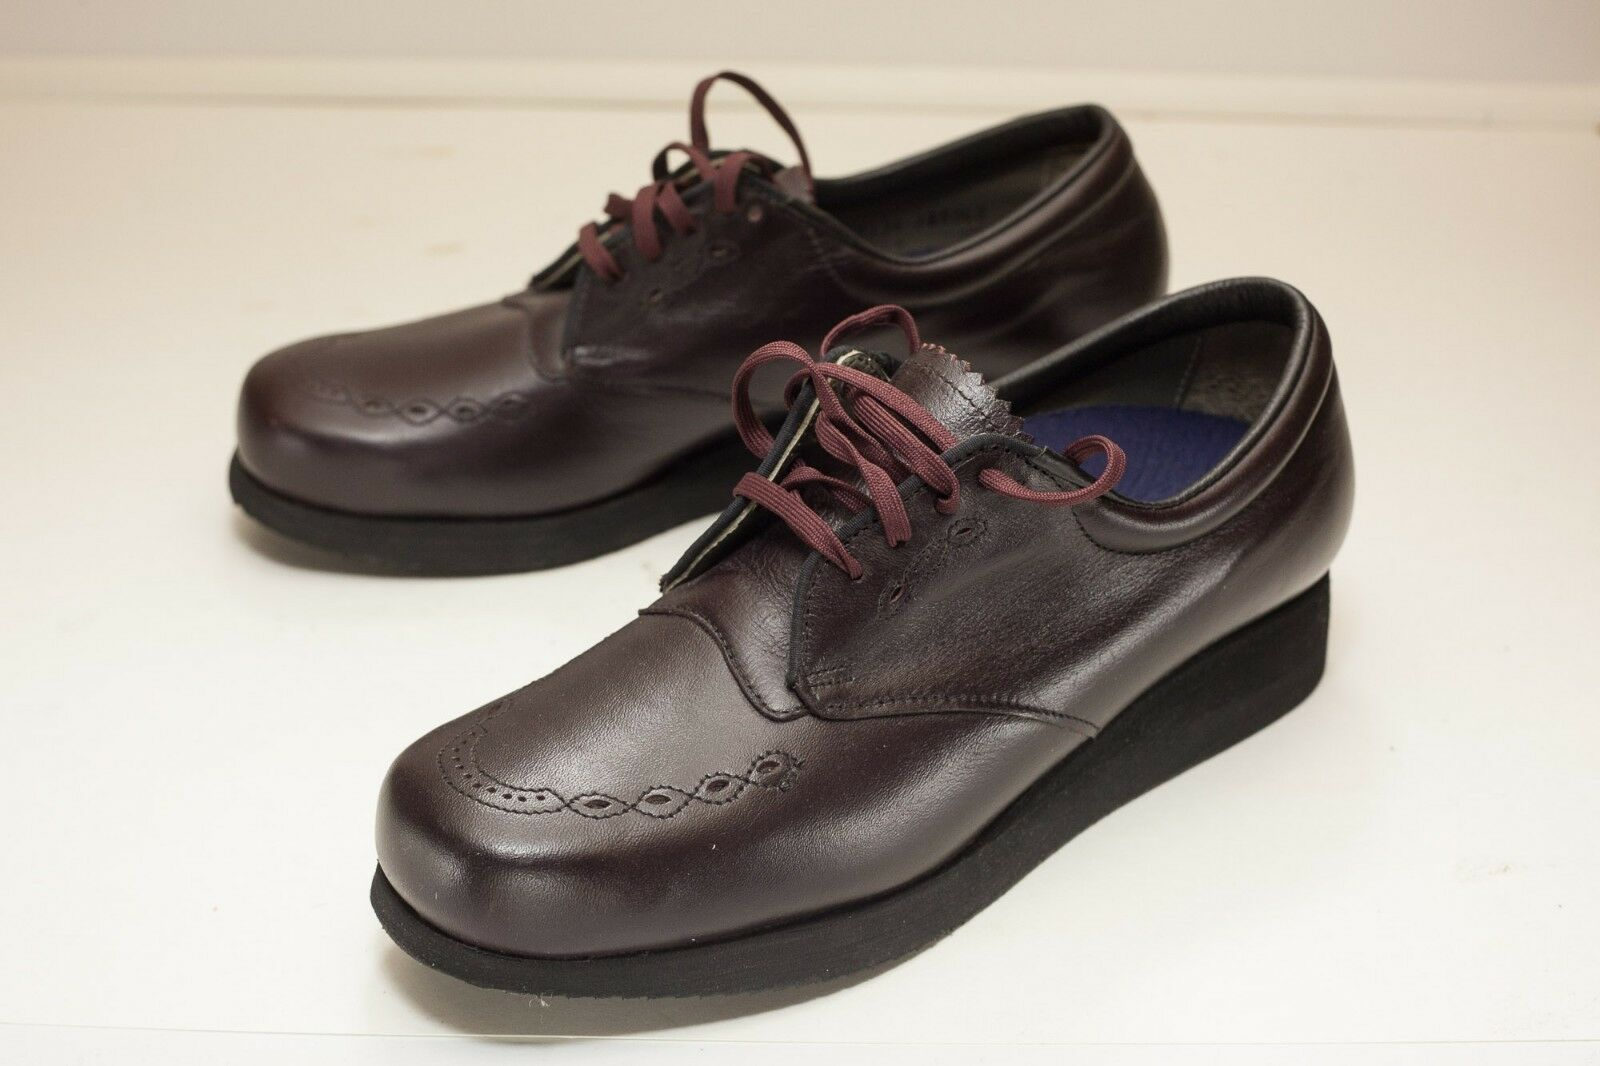 prezzo all'ingrosso e qualità affidabile P. W. W. W. Minor US 8.5 Narrow Burgundy Oxford Donna  Extra Depth  ecco l'ultimo